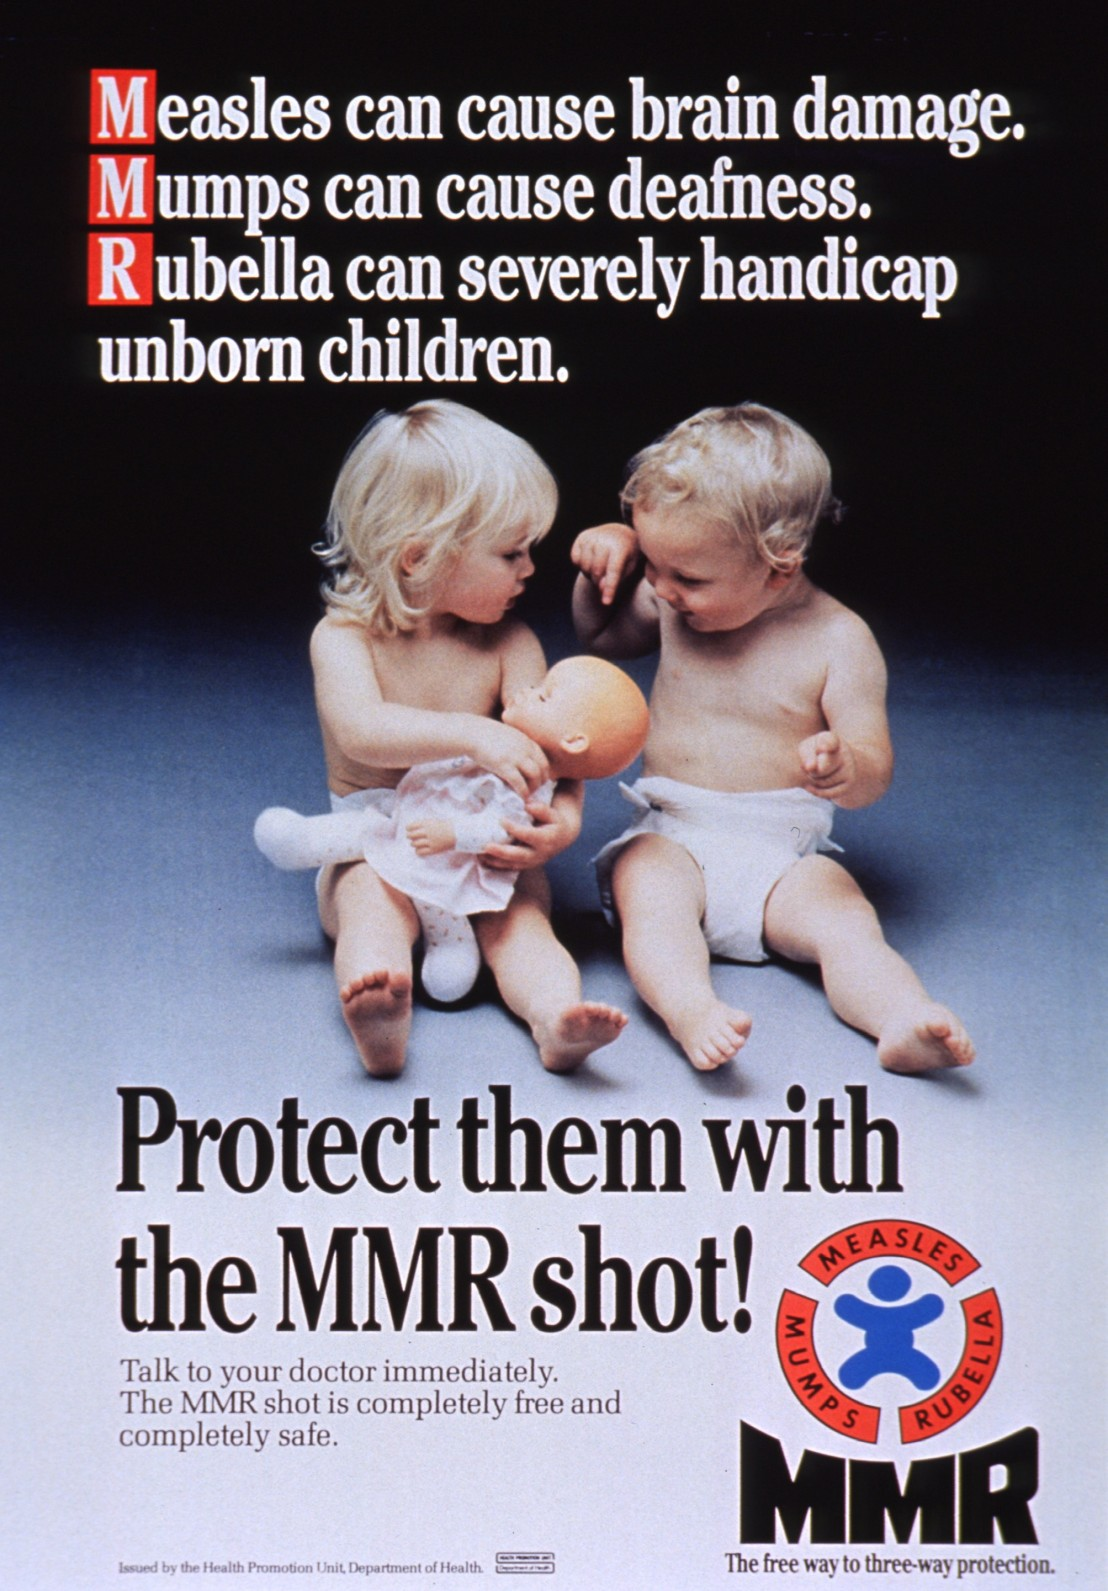 MMR Shot - three way protection.